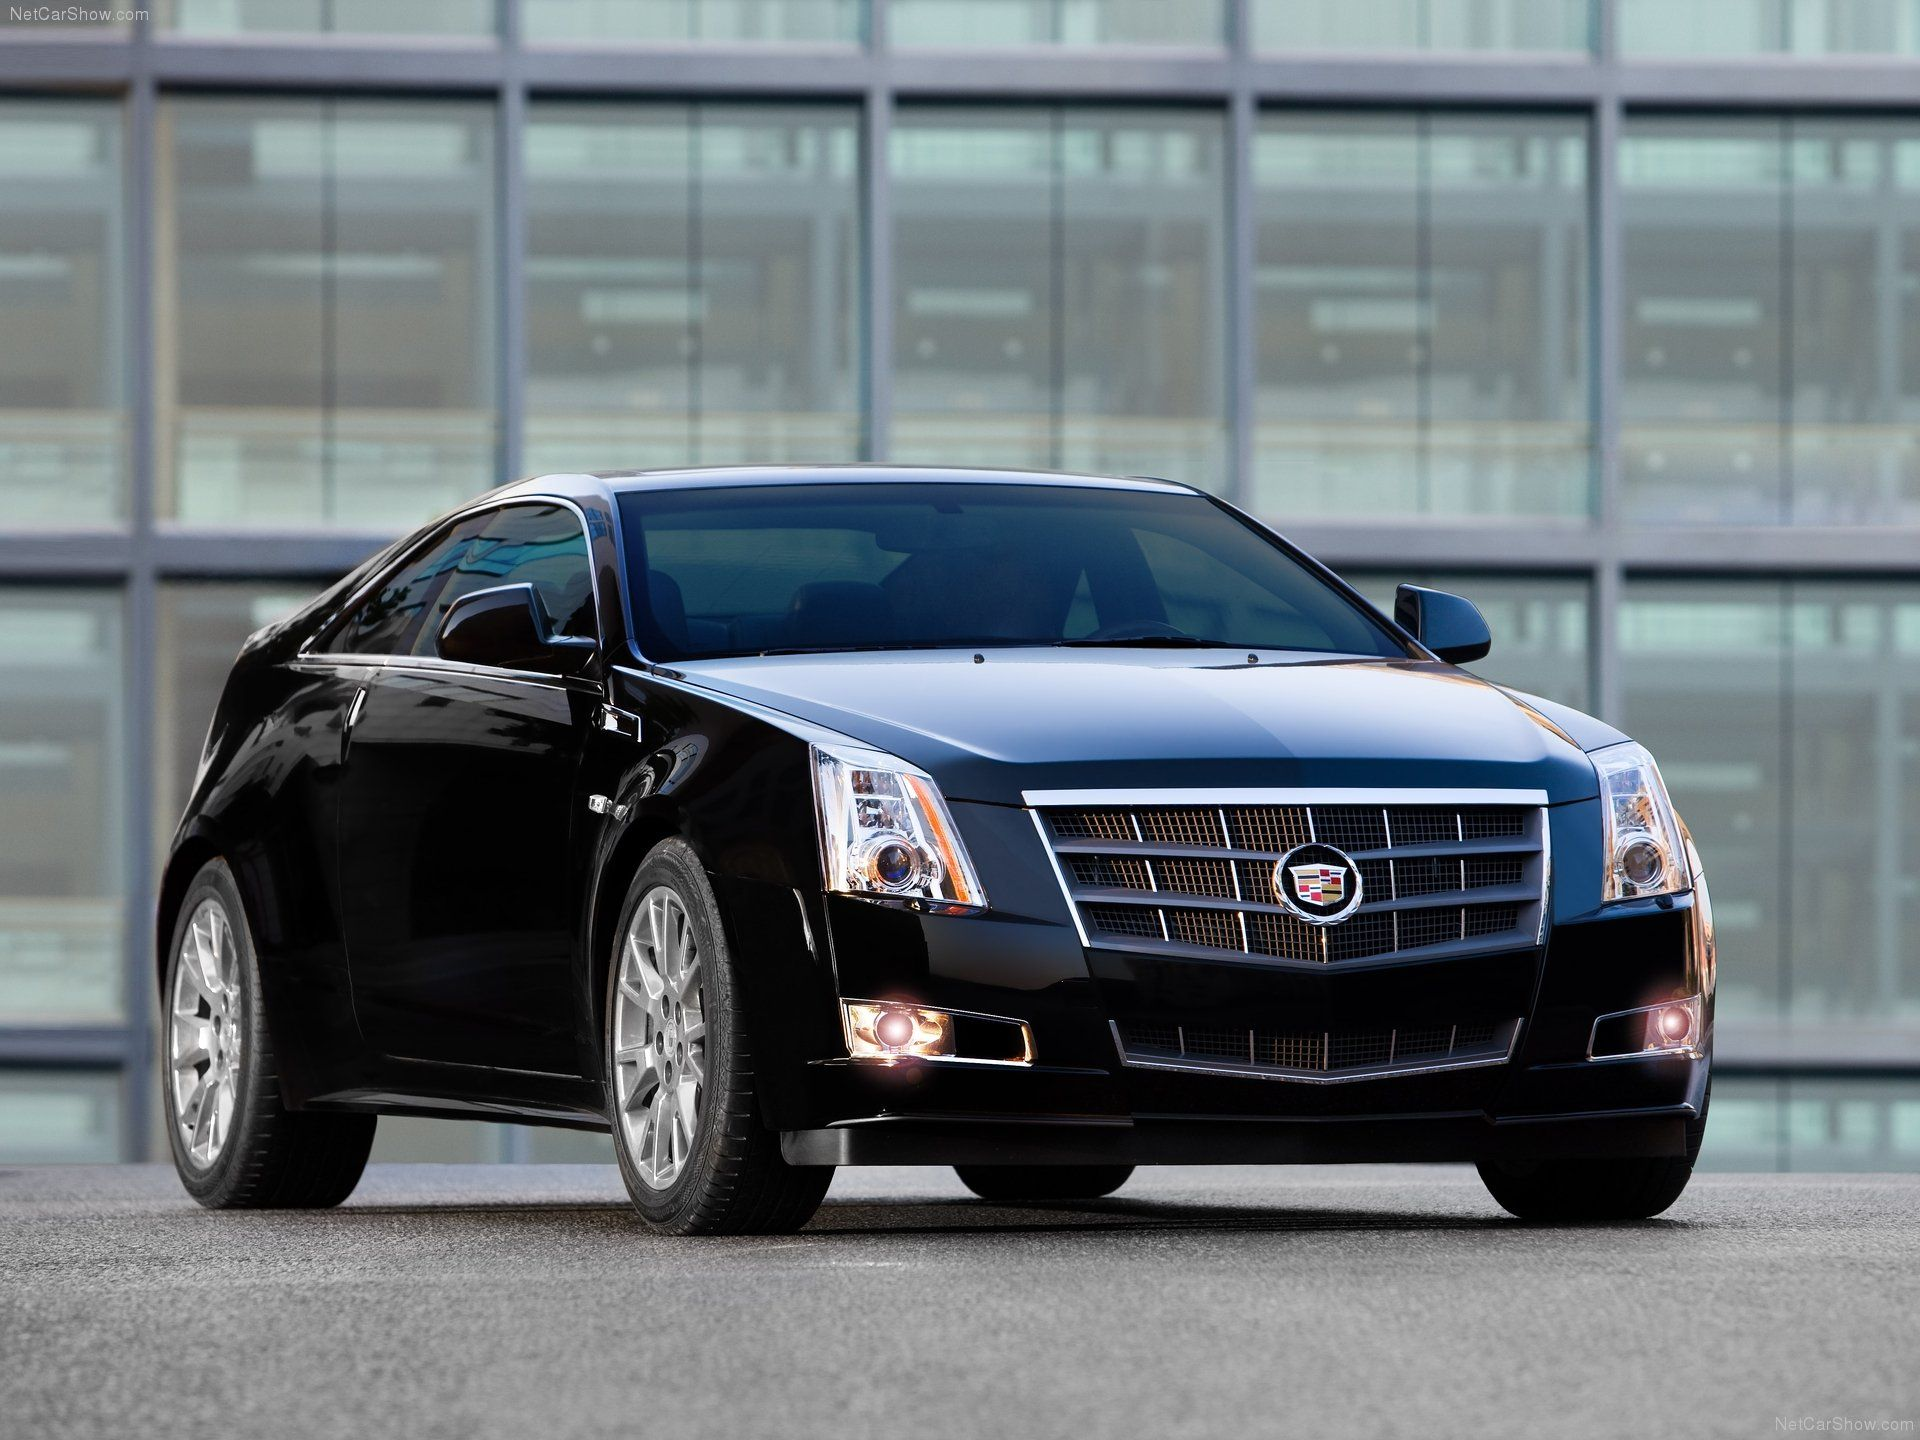 The new 2012 cadillac cts coupe features the cadillac cts coupe extends cadillac s emerging performance credentials the cadillac cts coupe